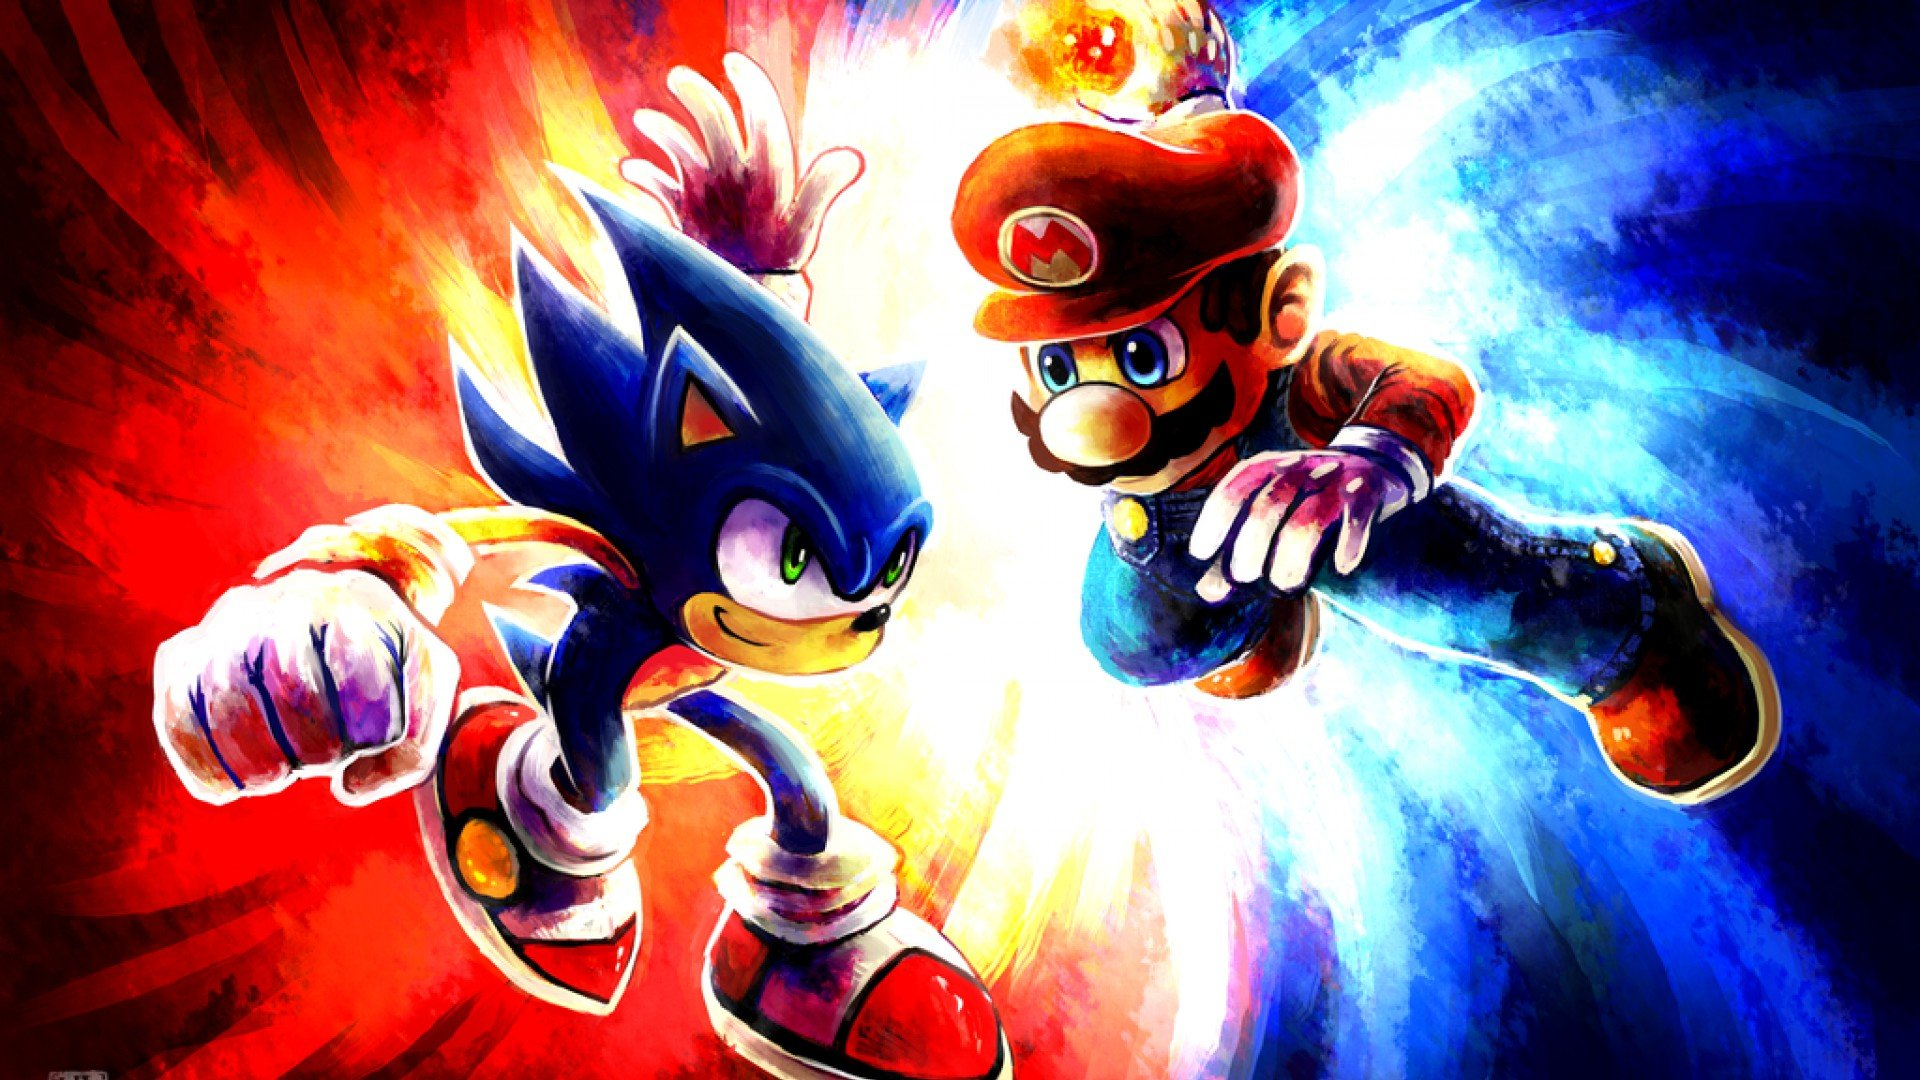 Mario And Sonic Wallpaper, PC, Laptop 50 Mario And Sonic